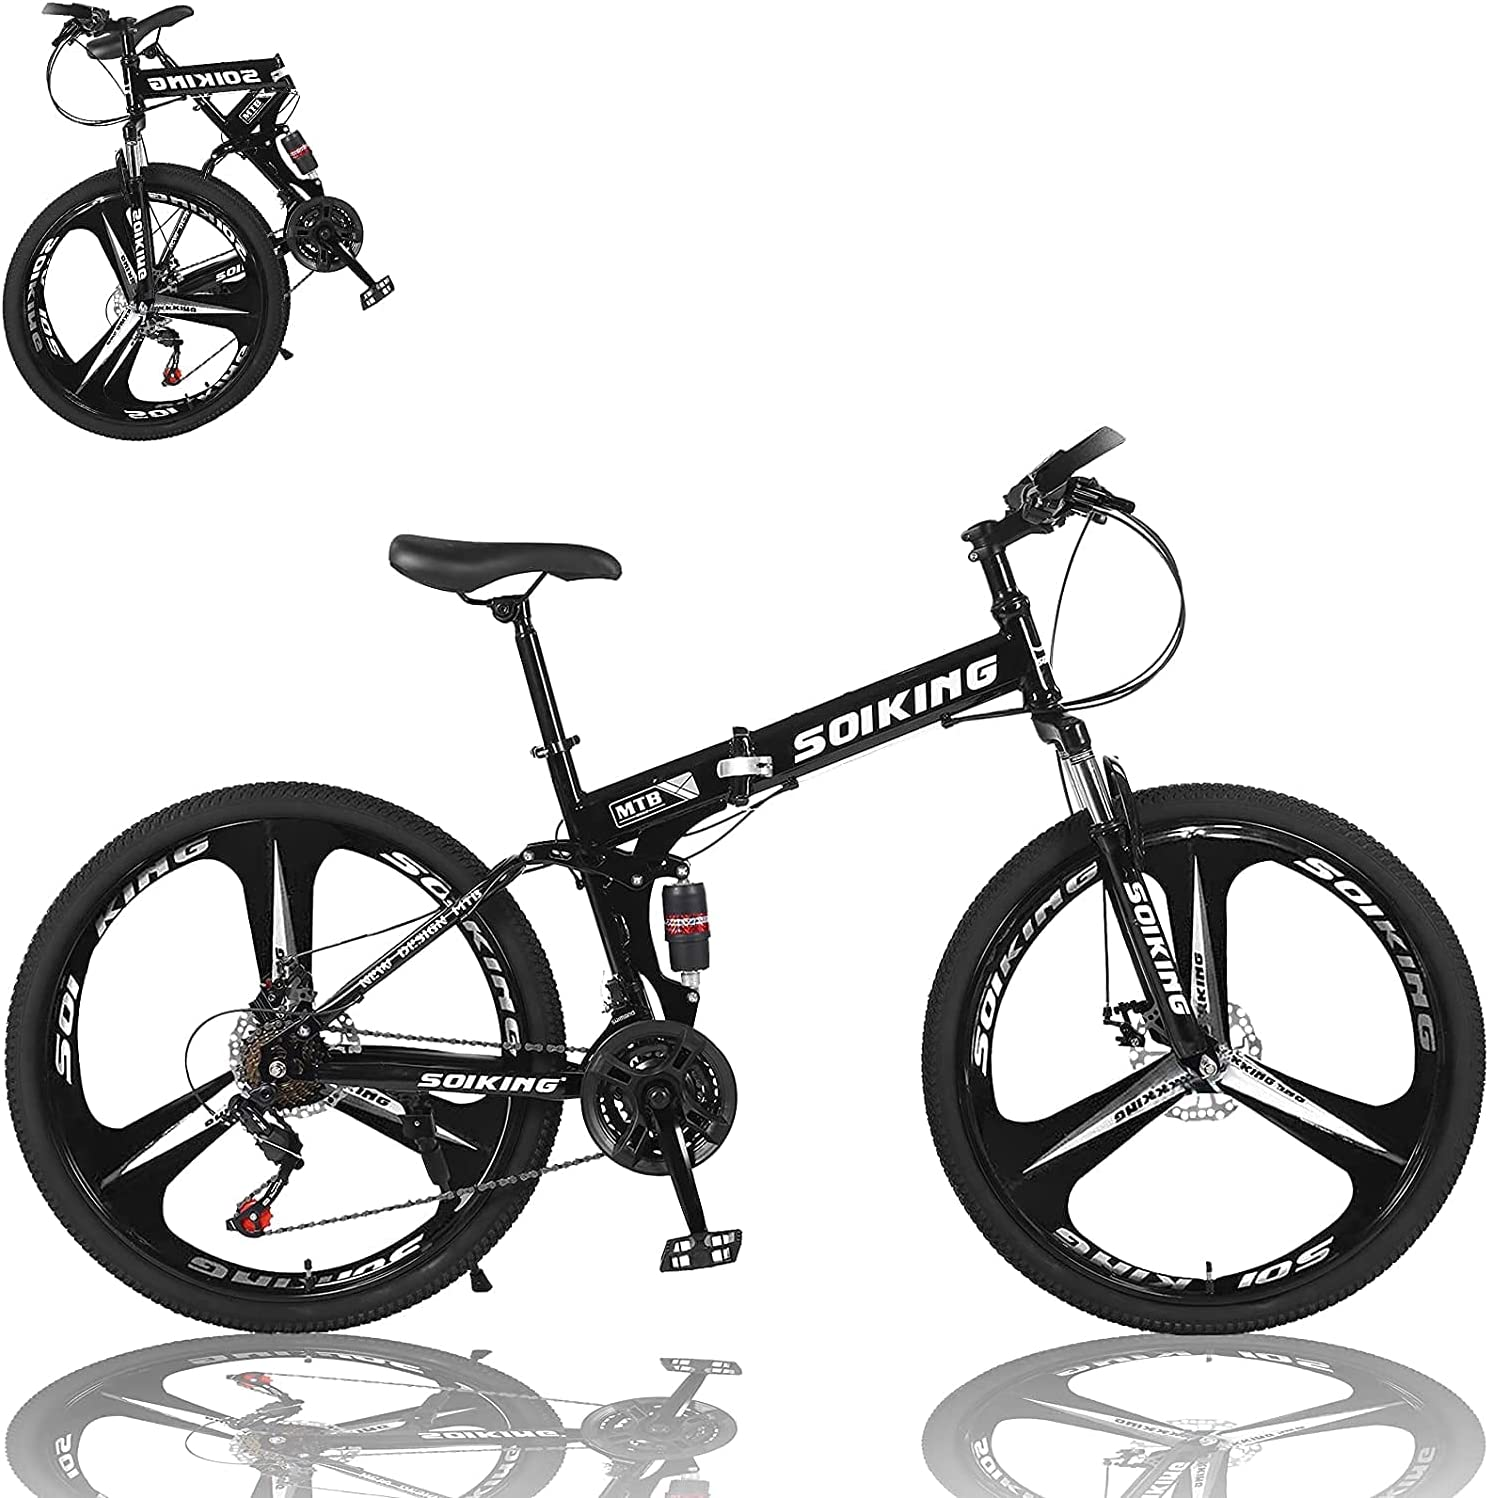 26In Foldable Bicycle Mountain Bike Brand new - 21 Carbon Steel High Speed Portland Mall